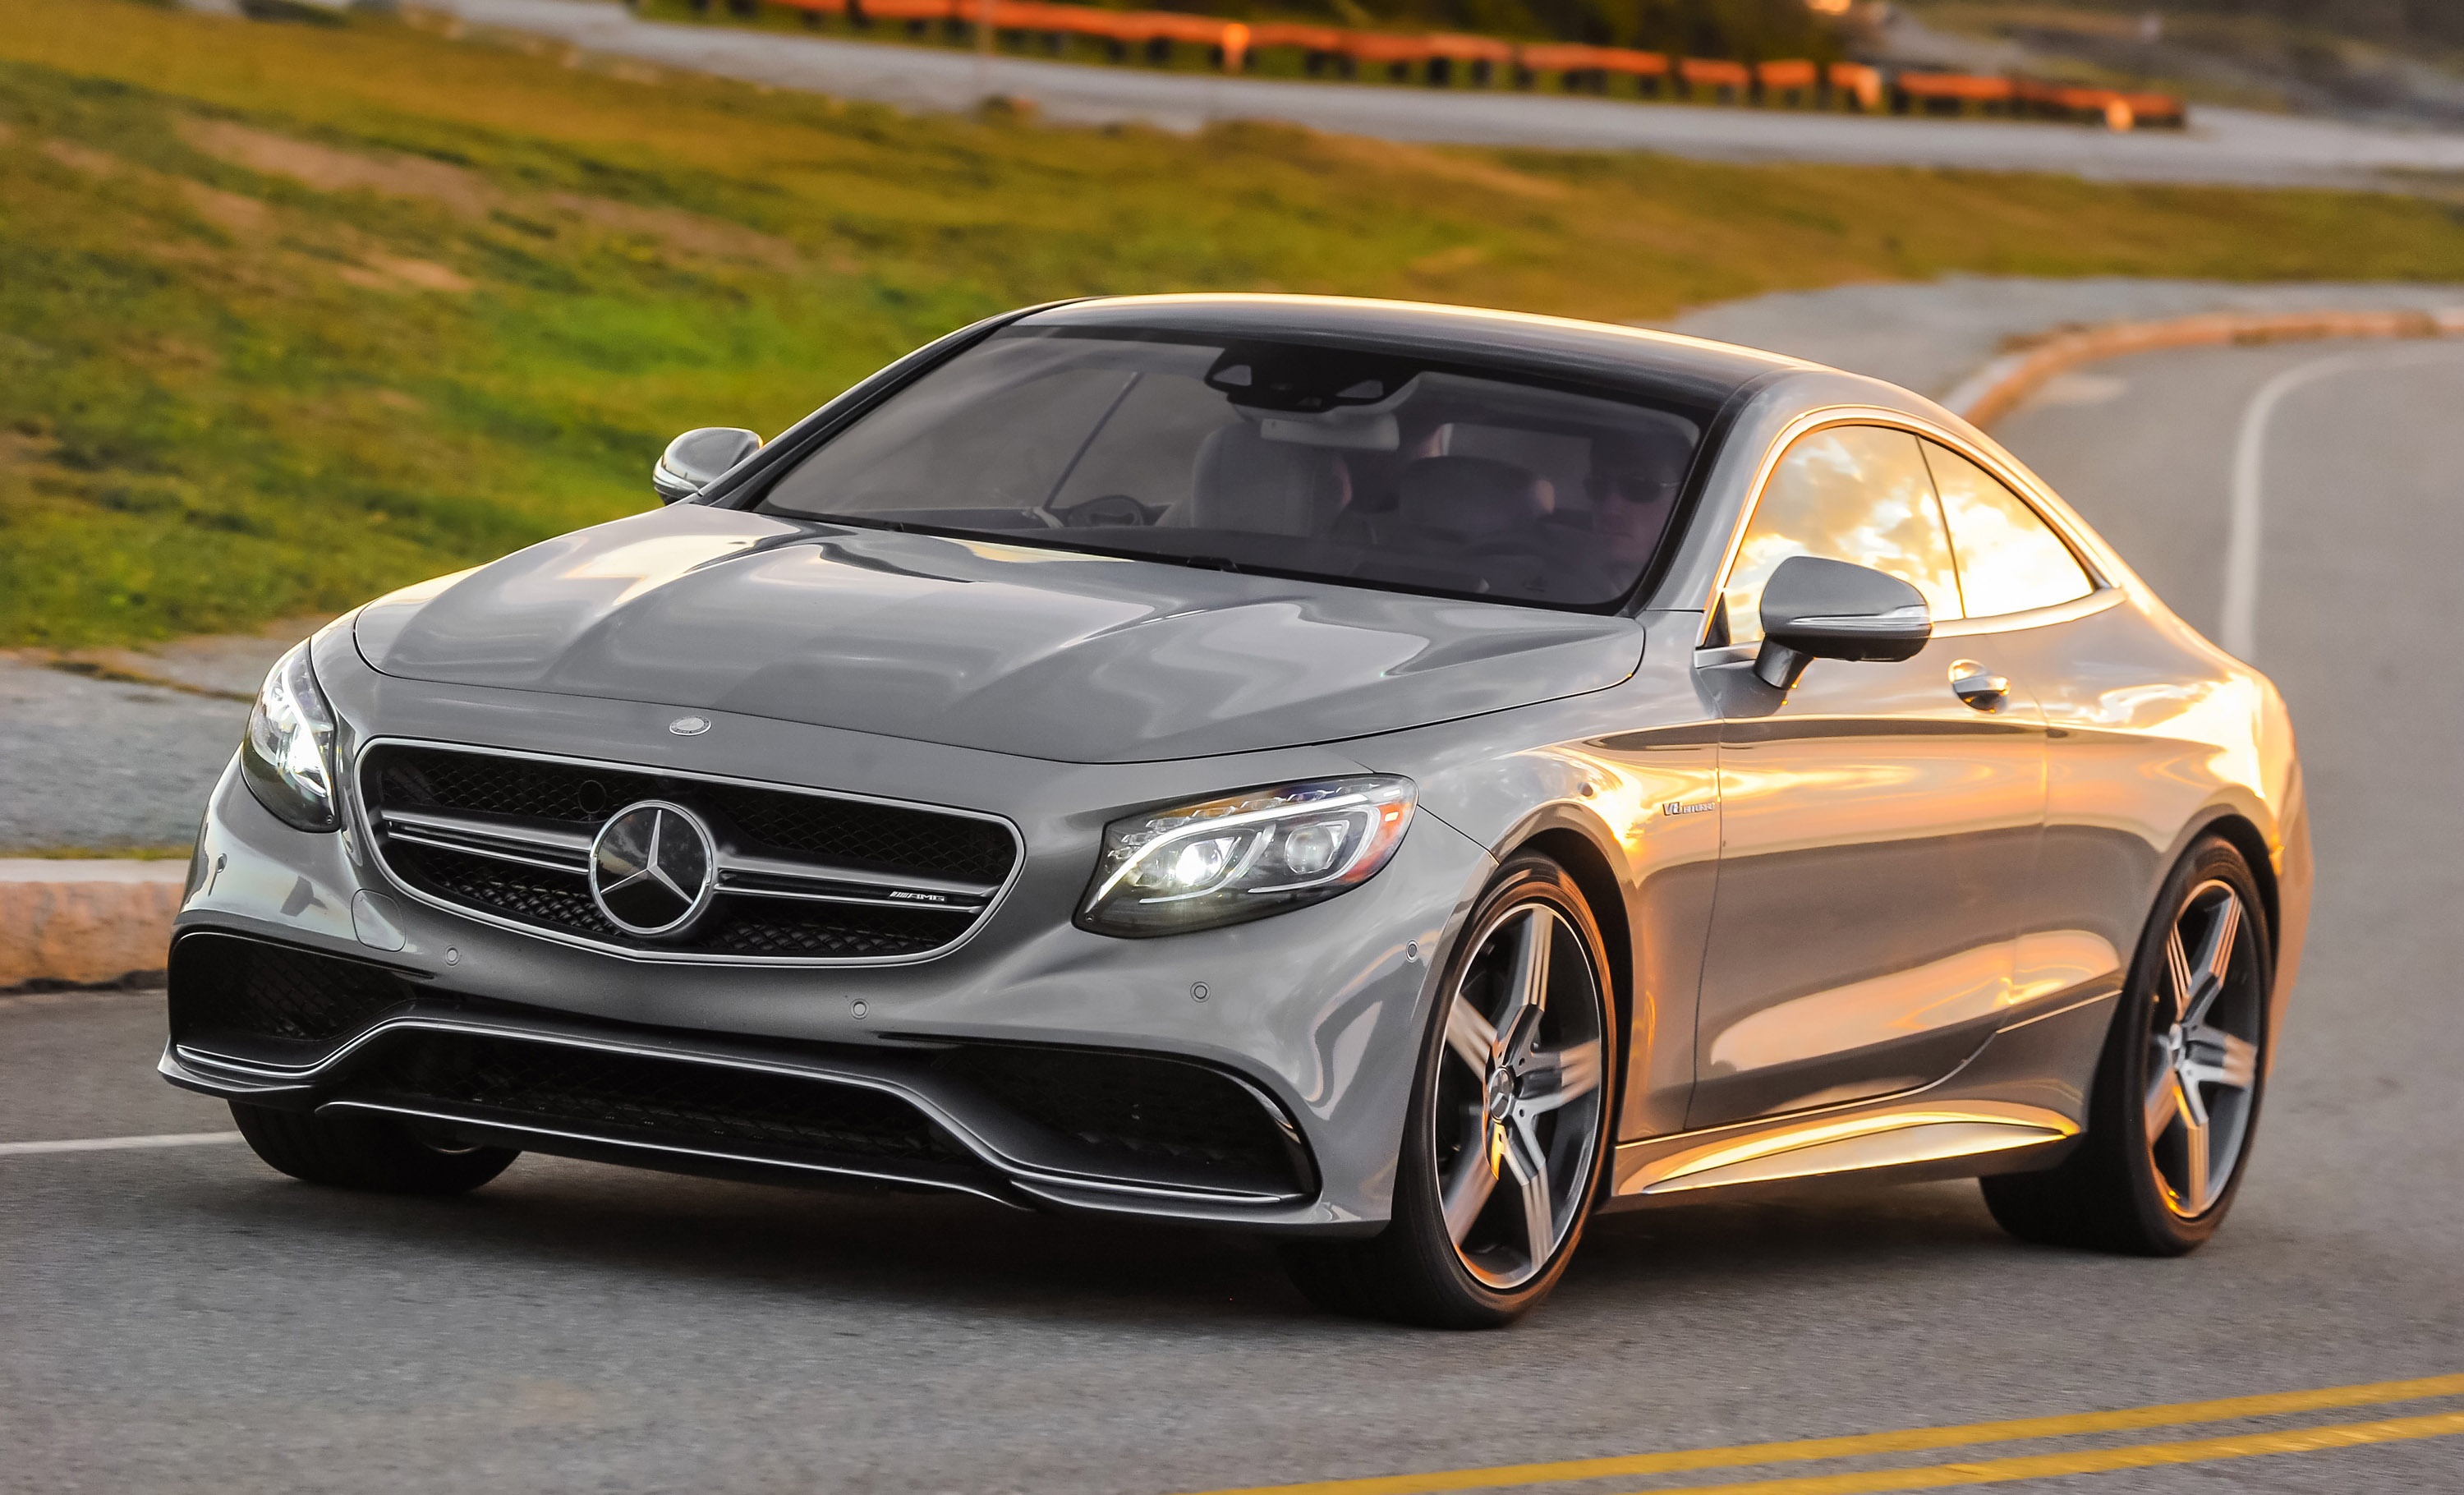 Meet the new 2015 mercedes benz s63 amg 4matic coupe for Mercedes benz e amg